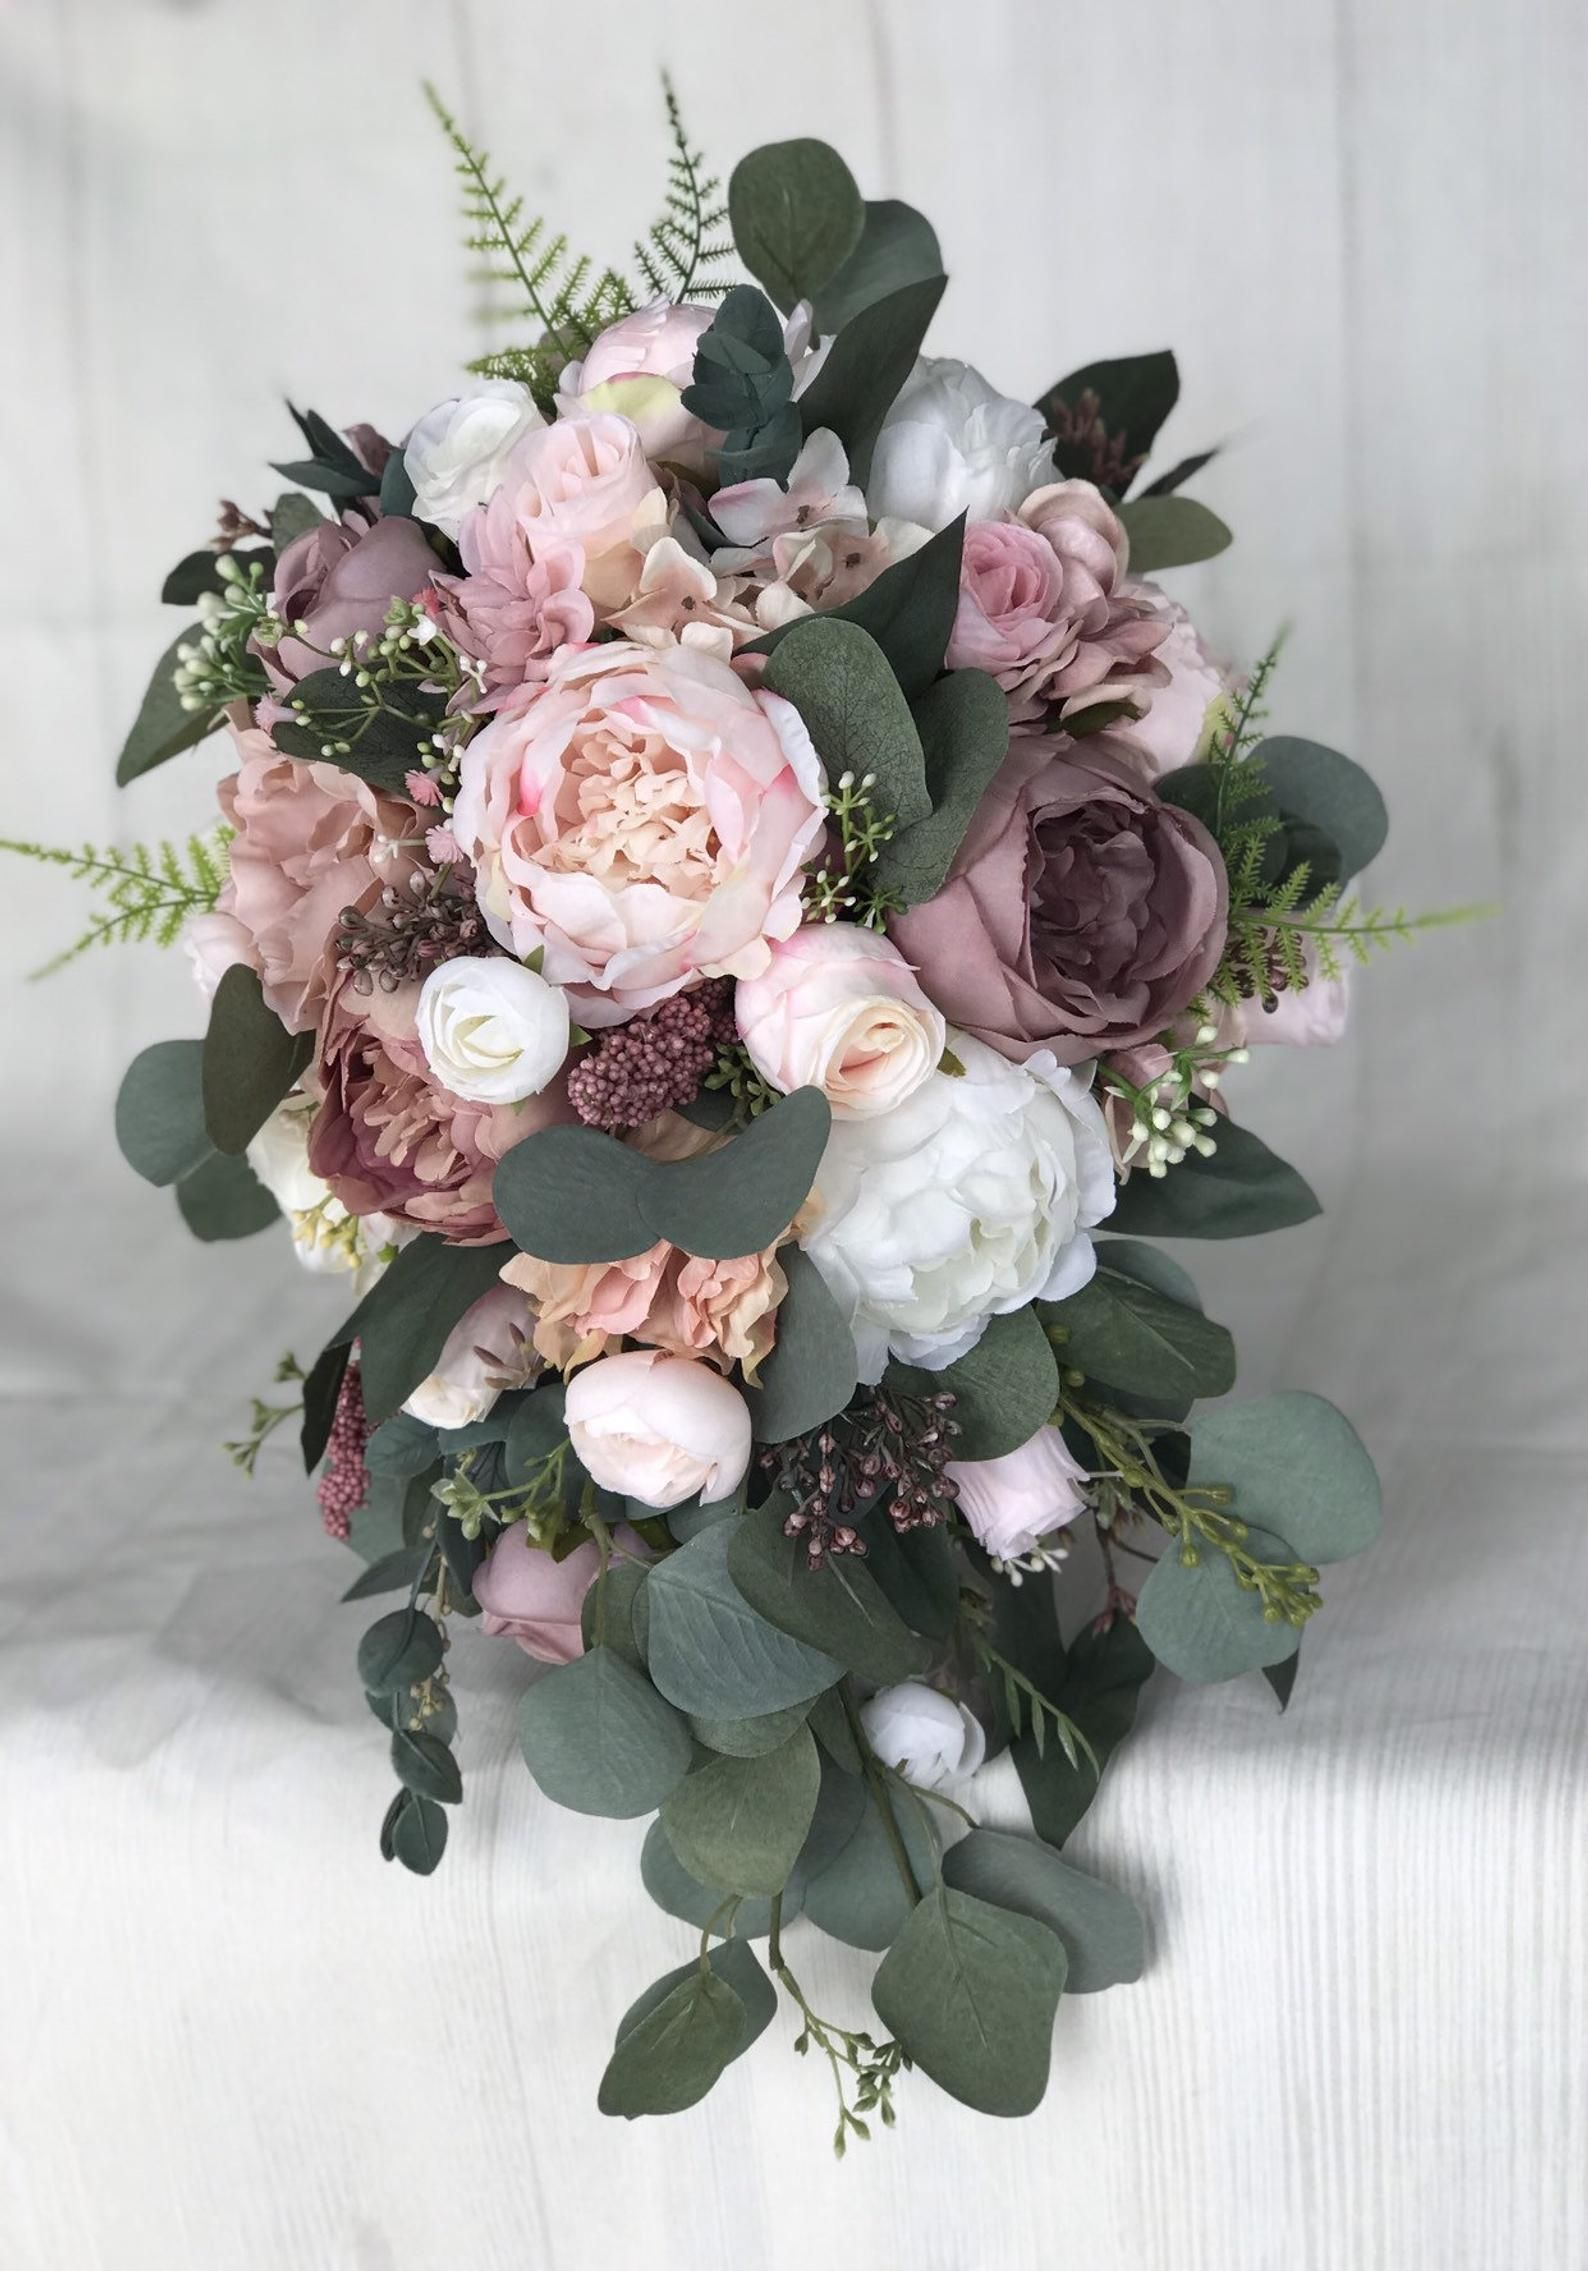 Wedding bouquet, Dusty Rose Bridal bouquet, Cascade bouquet, Blush Wedding bouquet, Mauve/Dusty Rose Wedding flowers, Silk Bridal bouquet